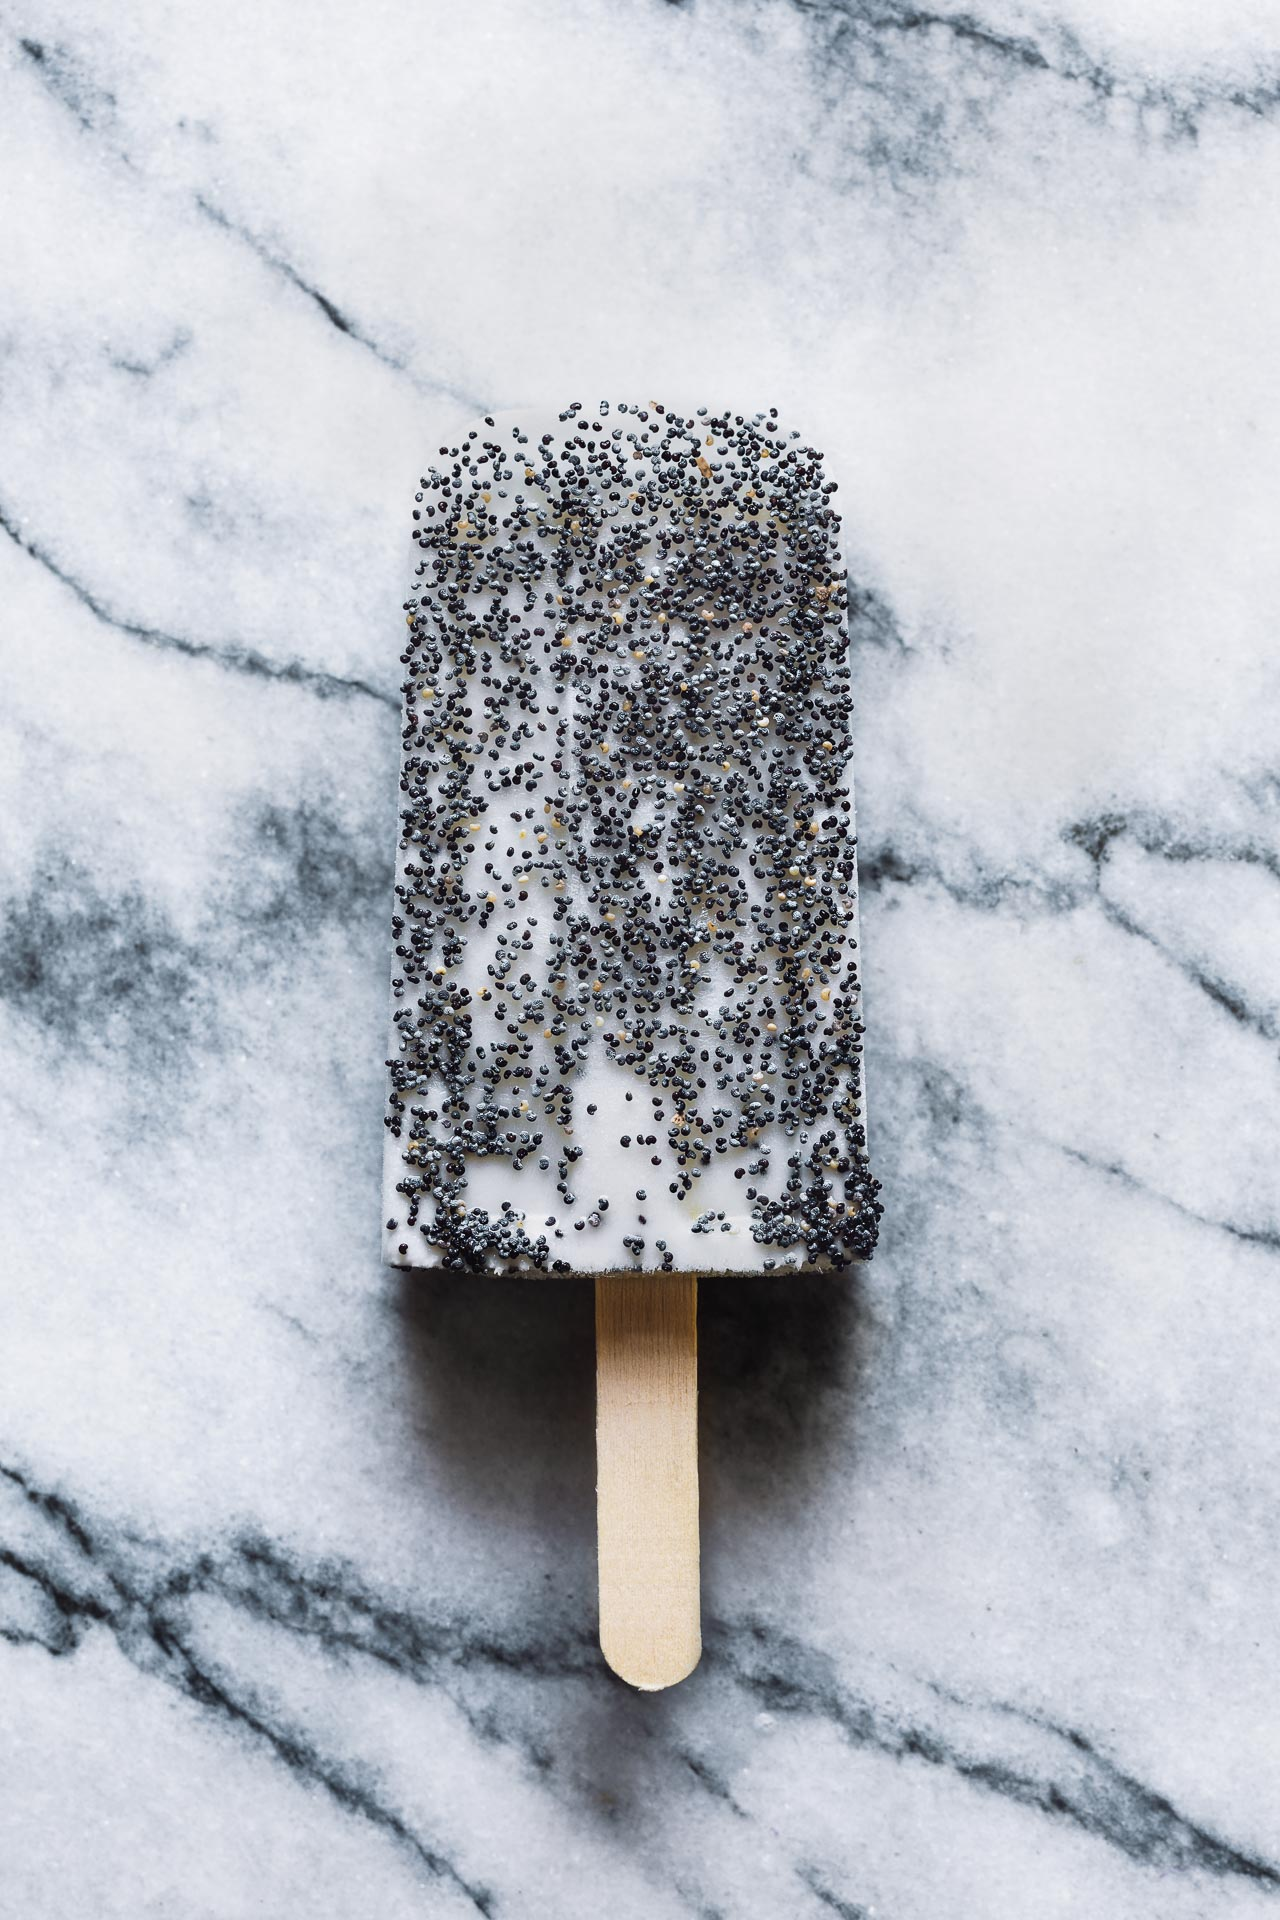 Lemon Poppy Seed Popsicles | HonestlyYUM (honestlyyum.com) #popsicleweek #summer #recipes #popsicles